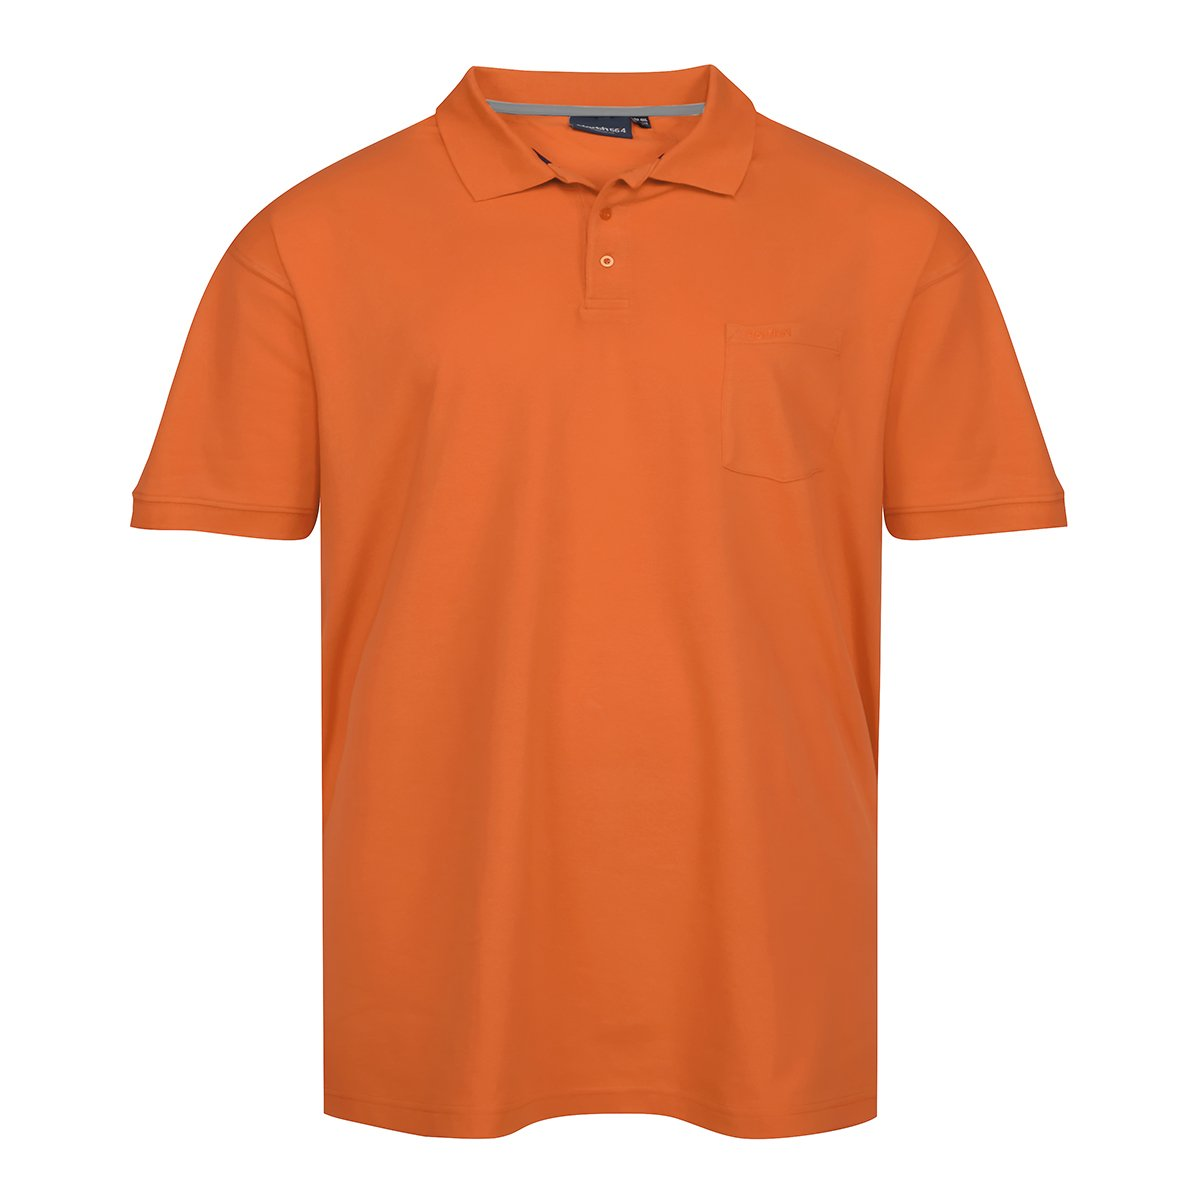 Allsize Polo Naranja North 56º4 by Tallas Grandes: Amazon.es: Ropa ...